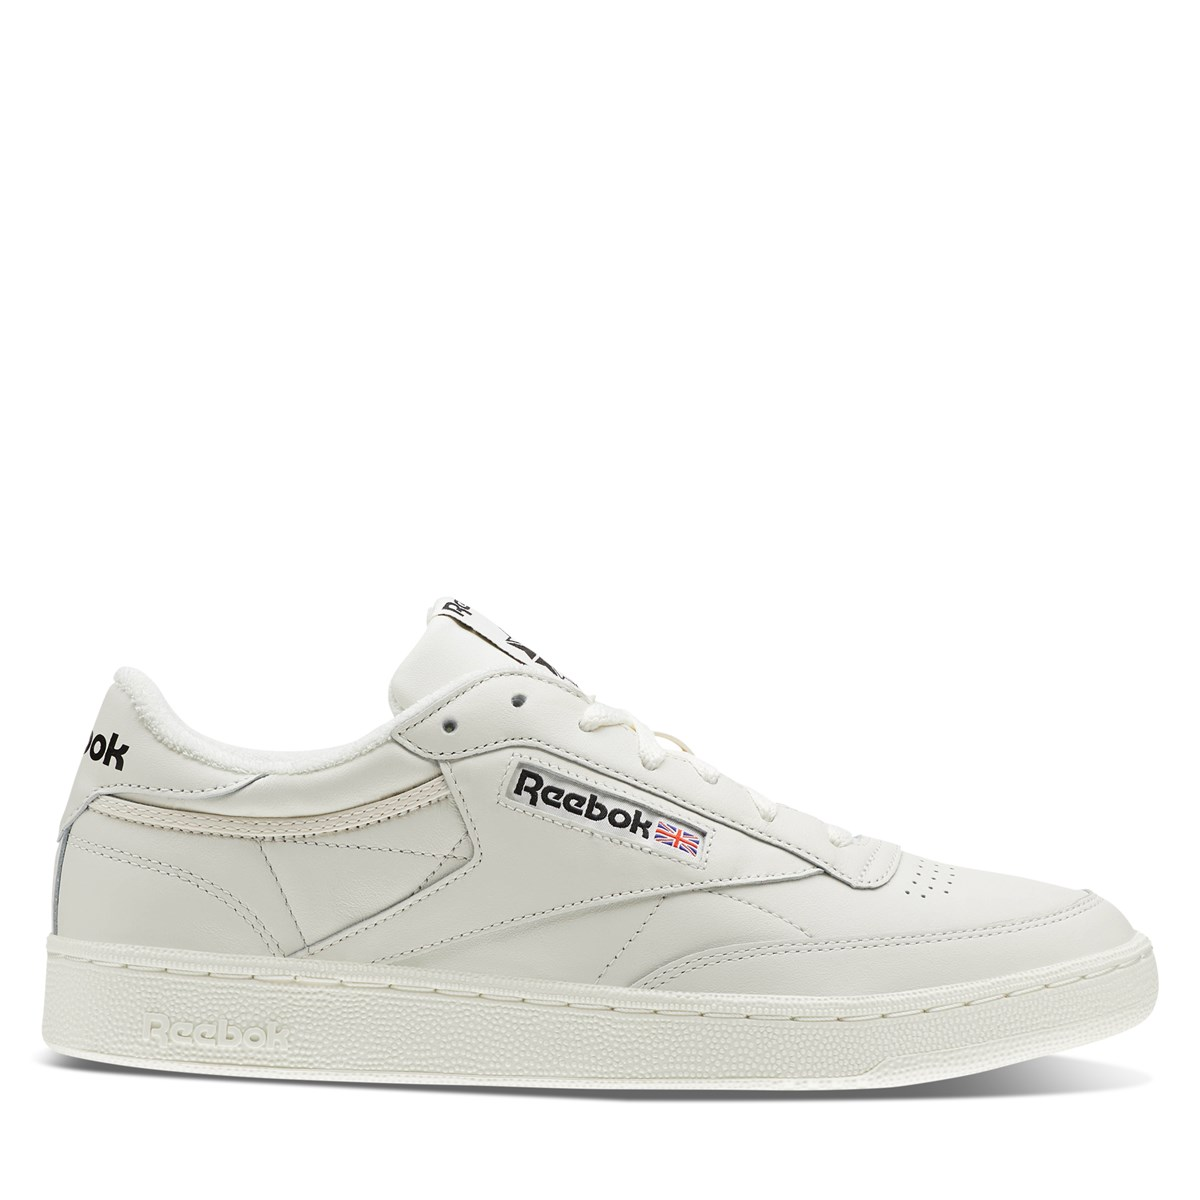 Men's Club C 85 MU Sneakers in White